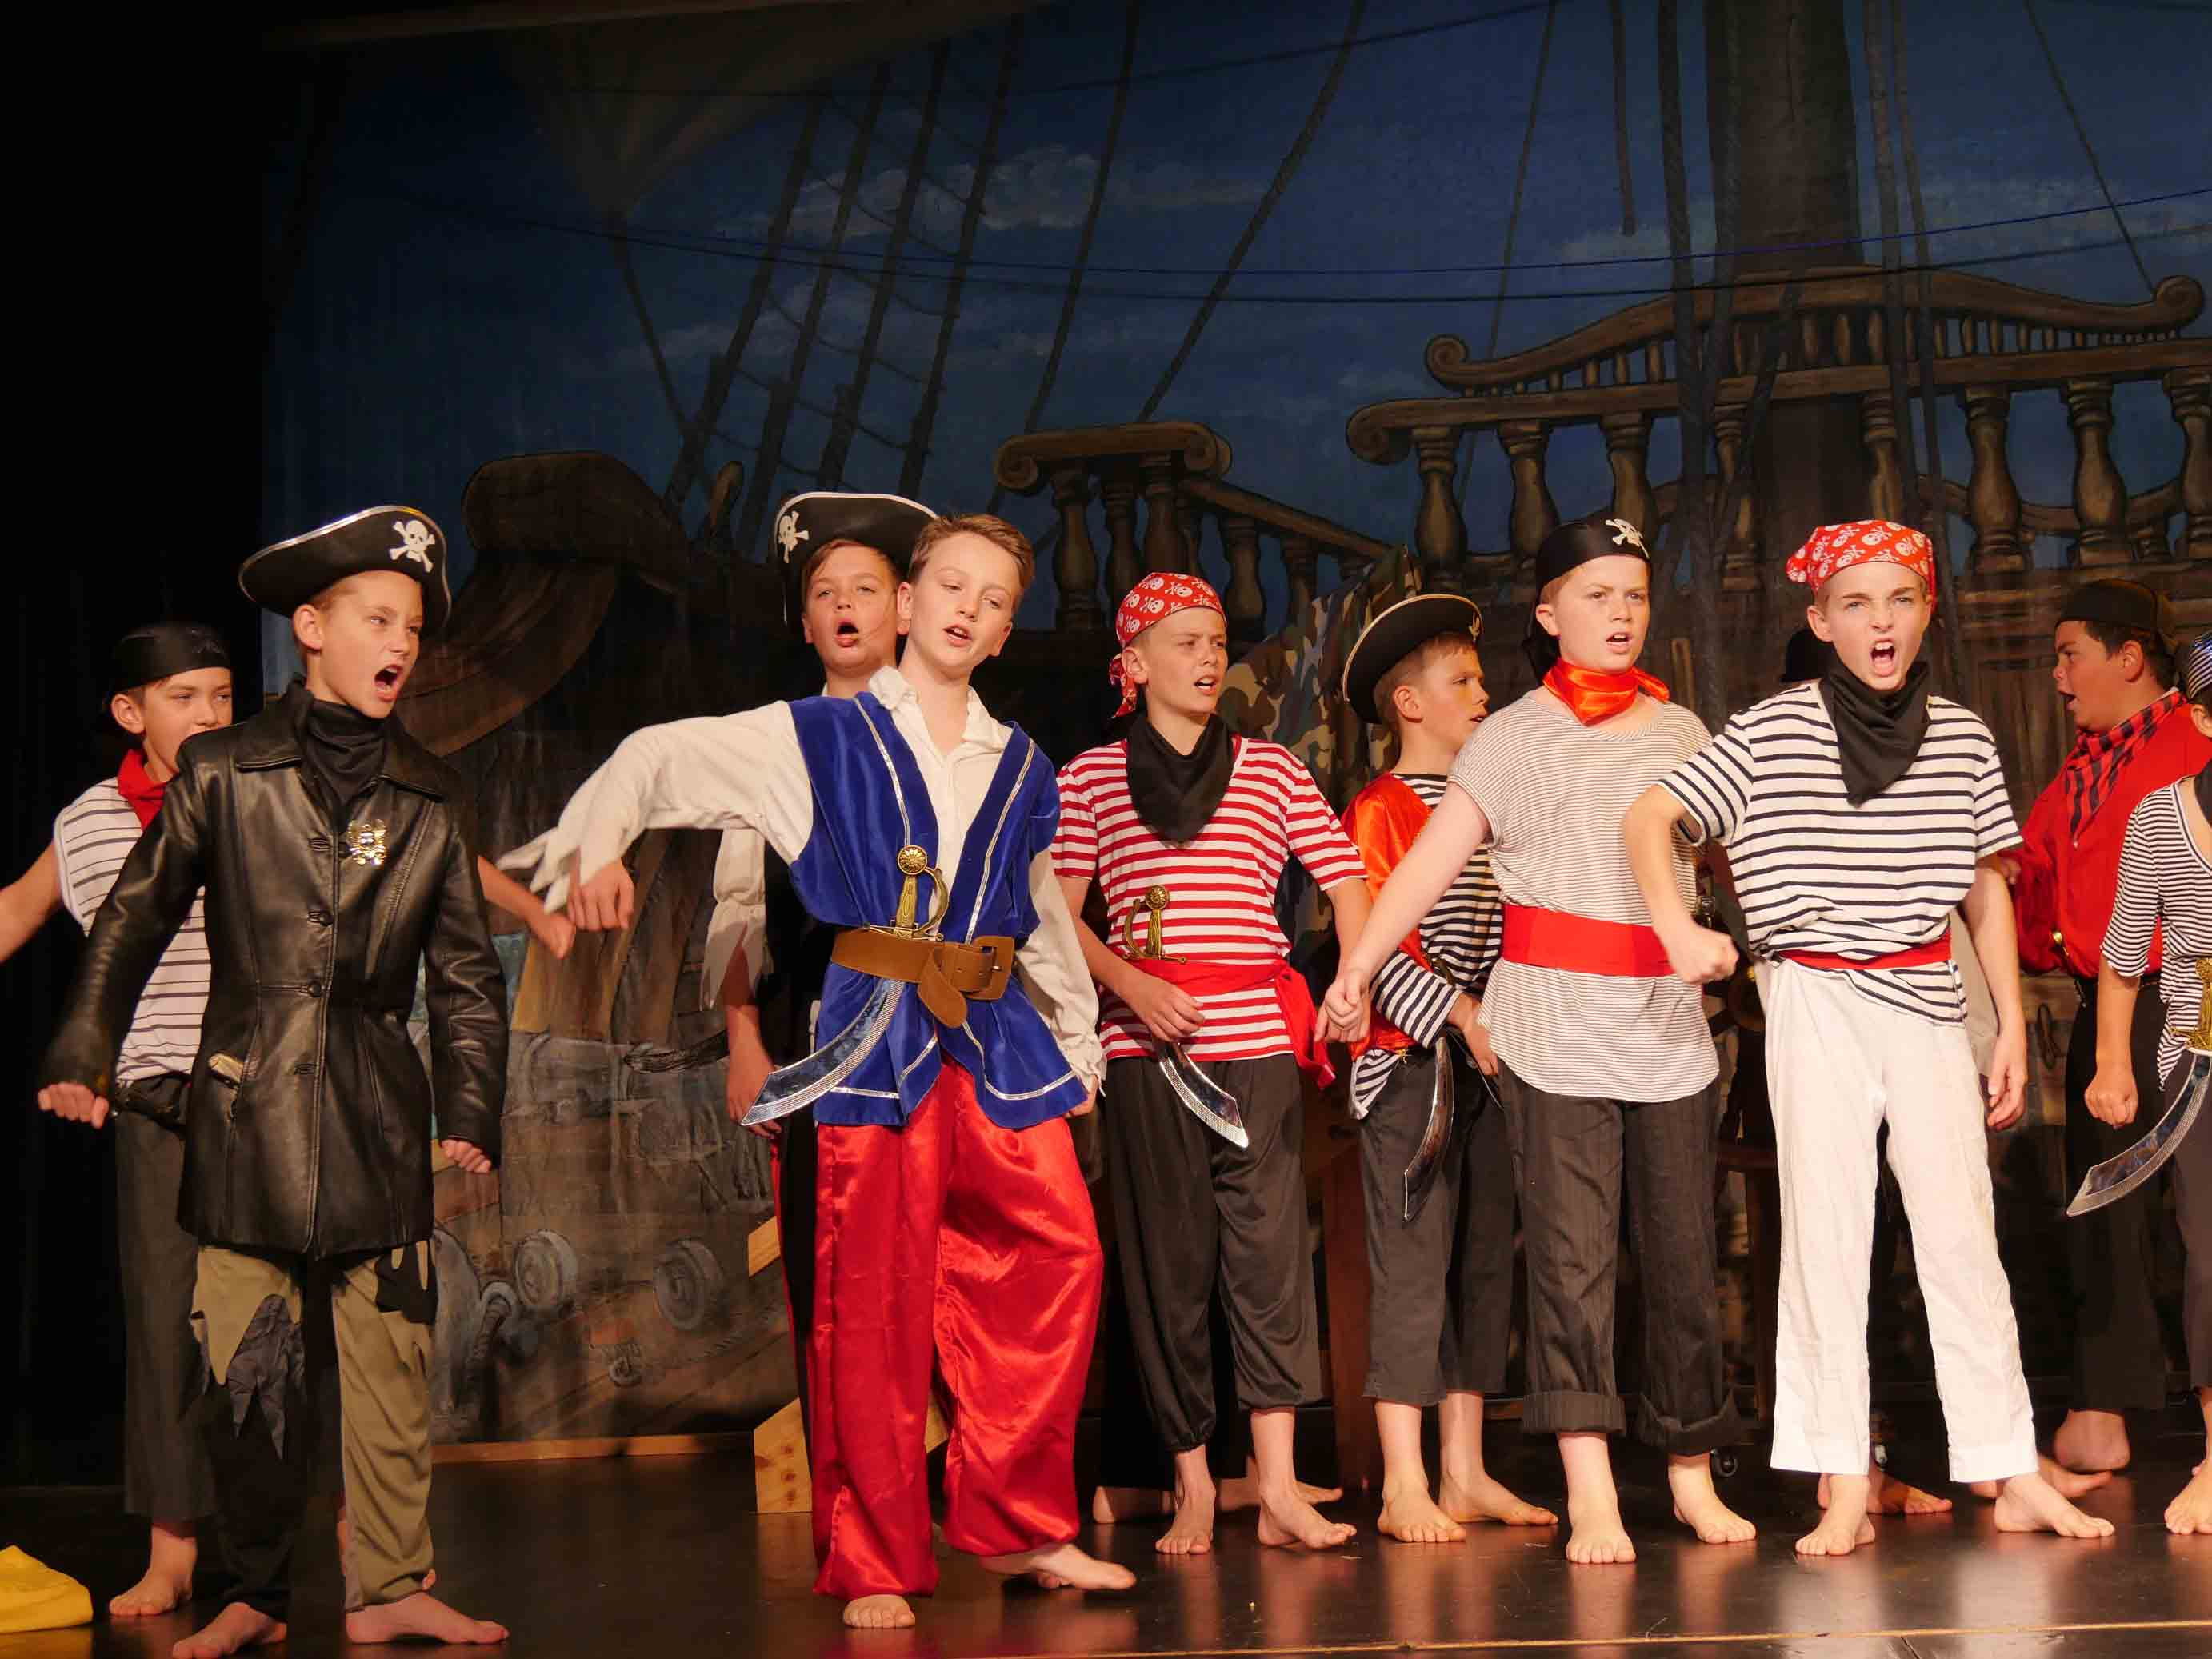 12 Boys'-School-2018-Production-Treasure-Island.jpg